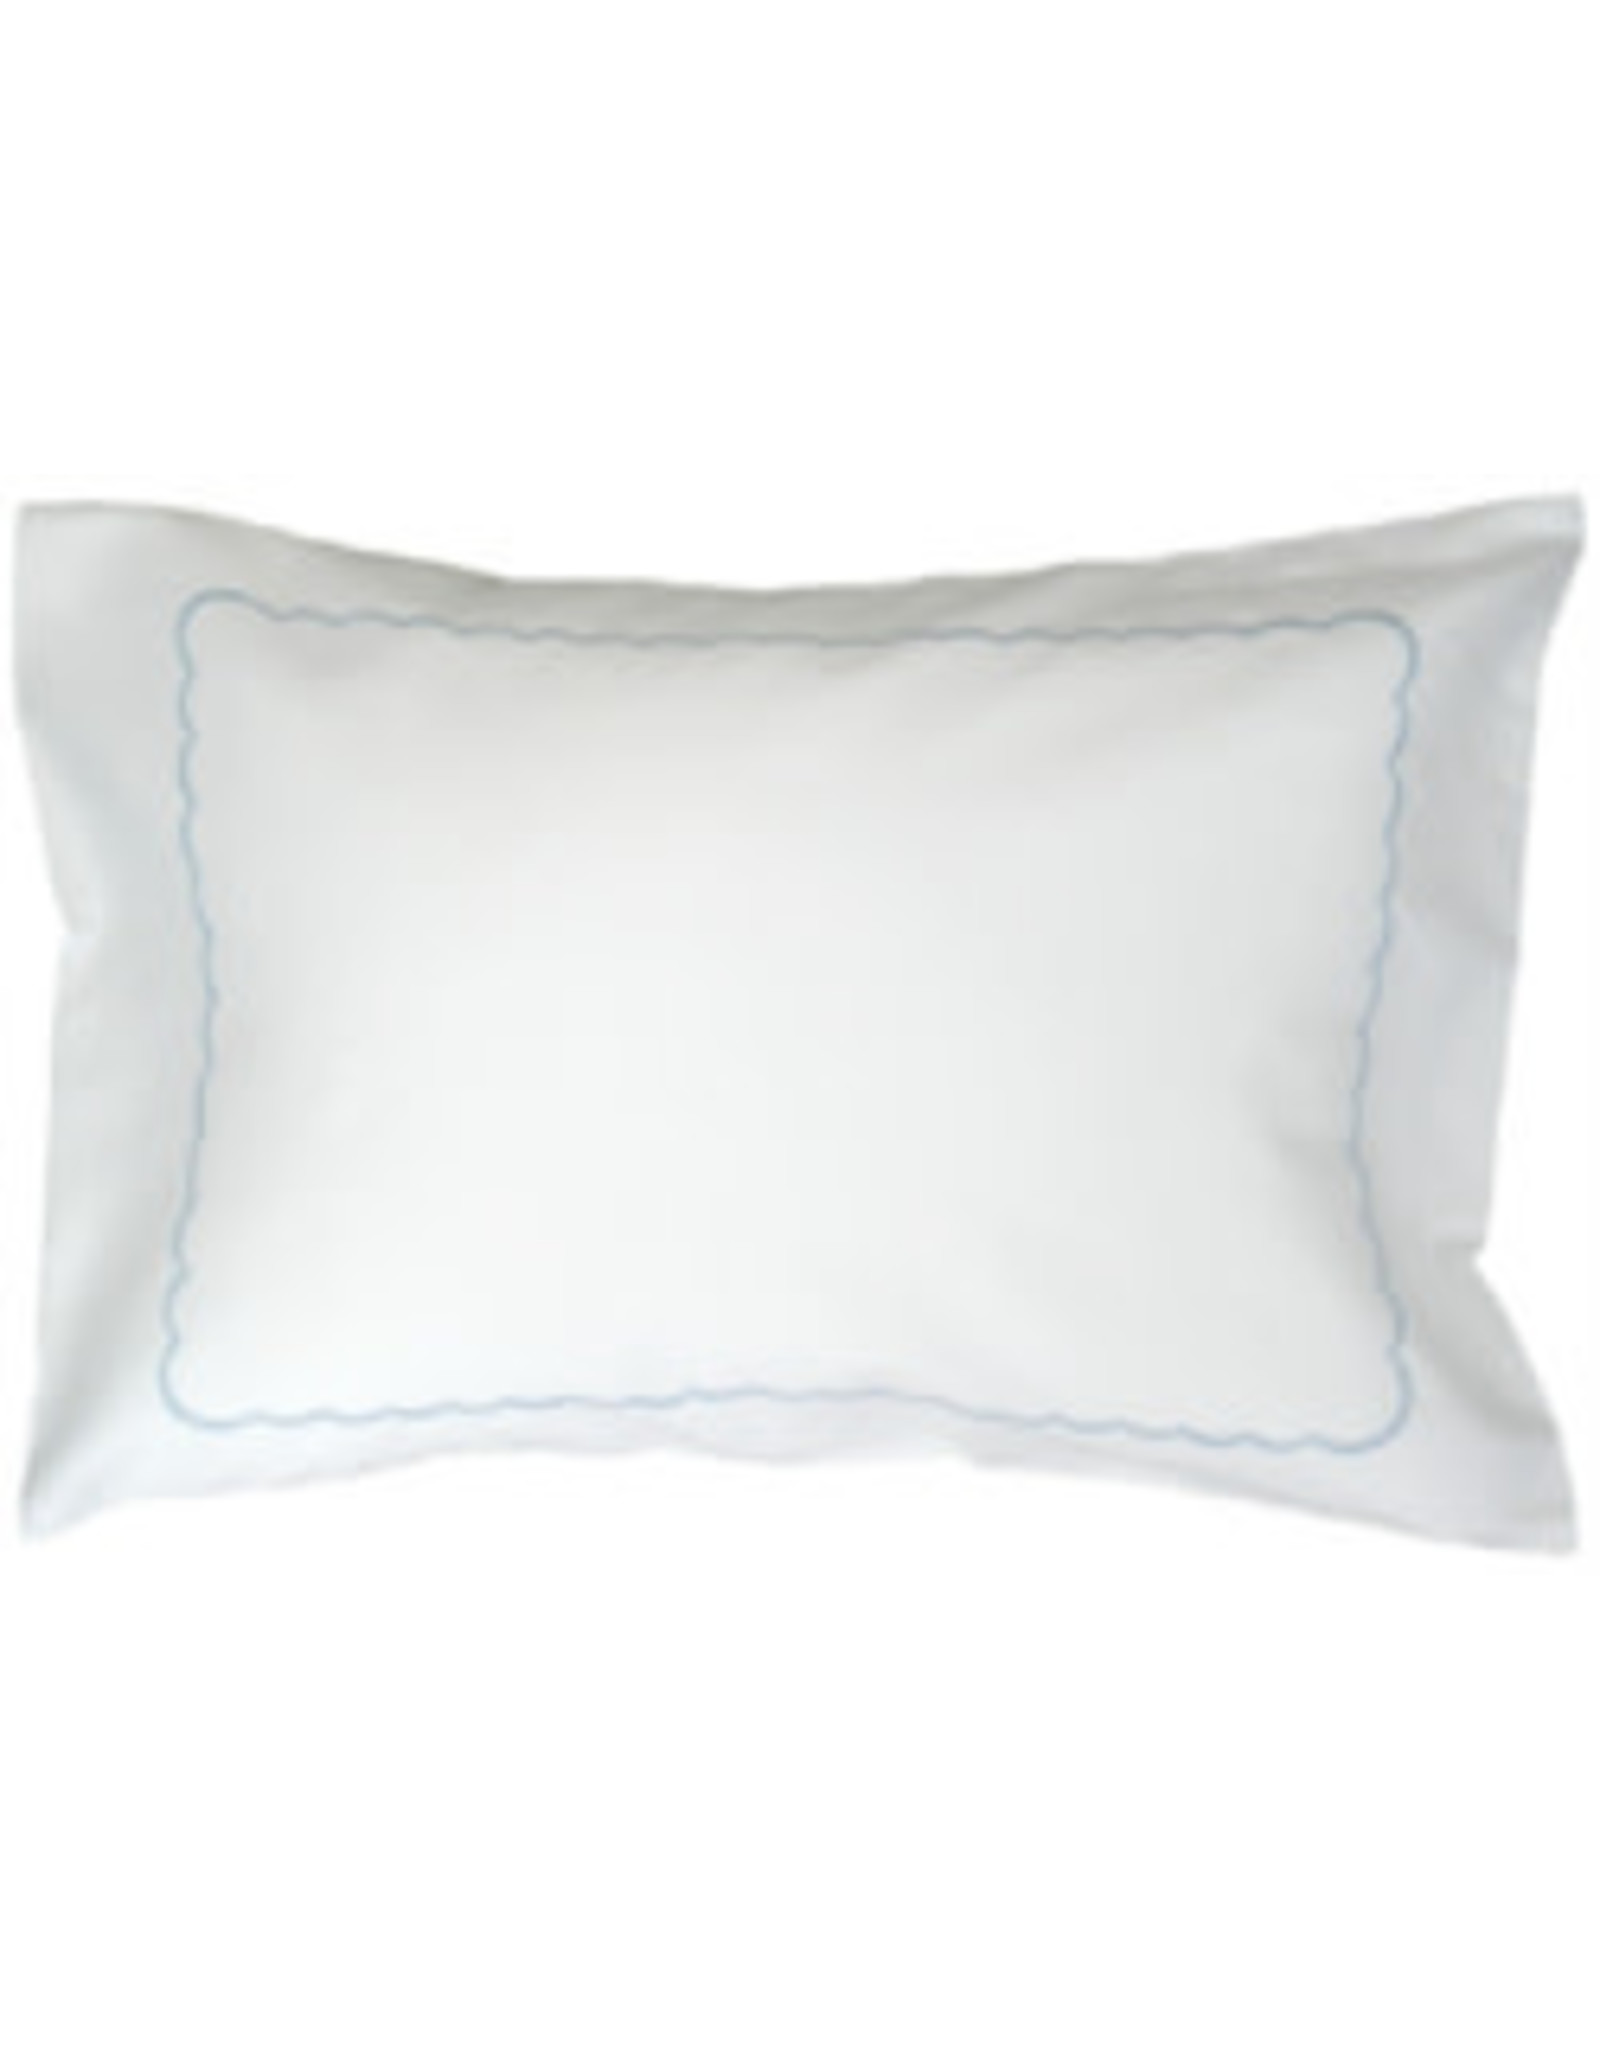 gerbrend Creations Pillow Light Blue Interior Scallop